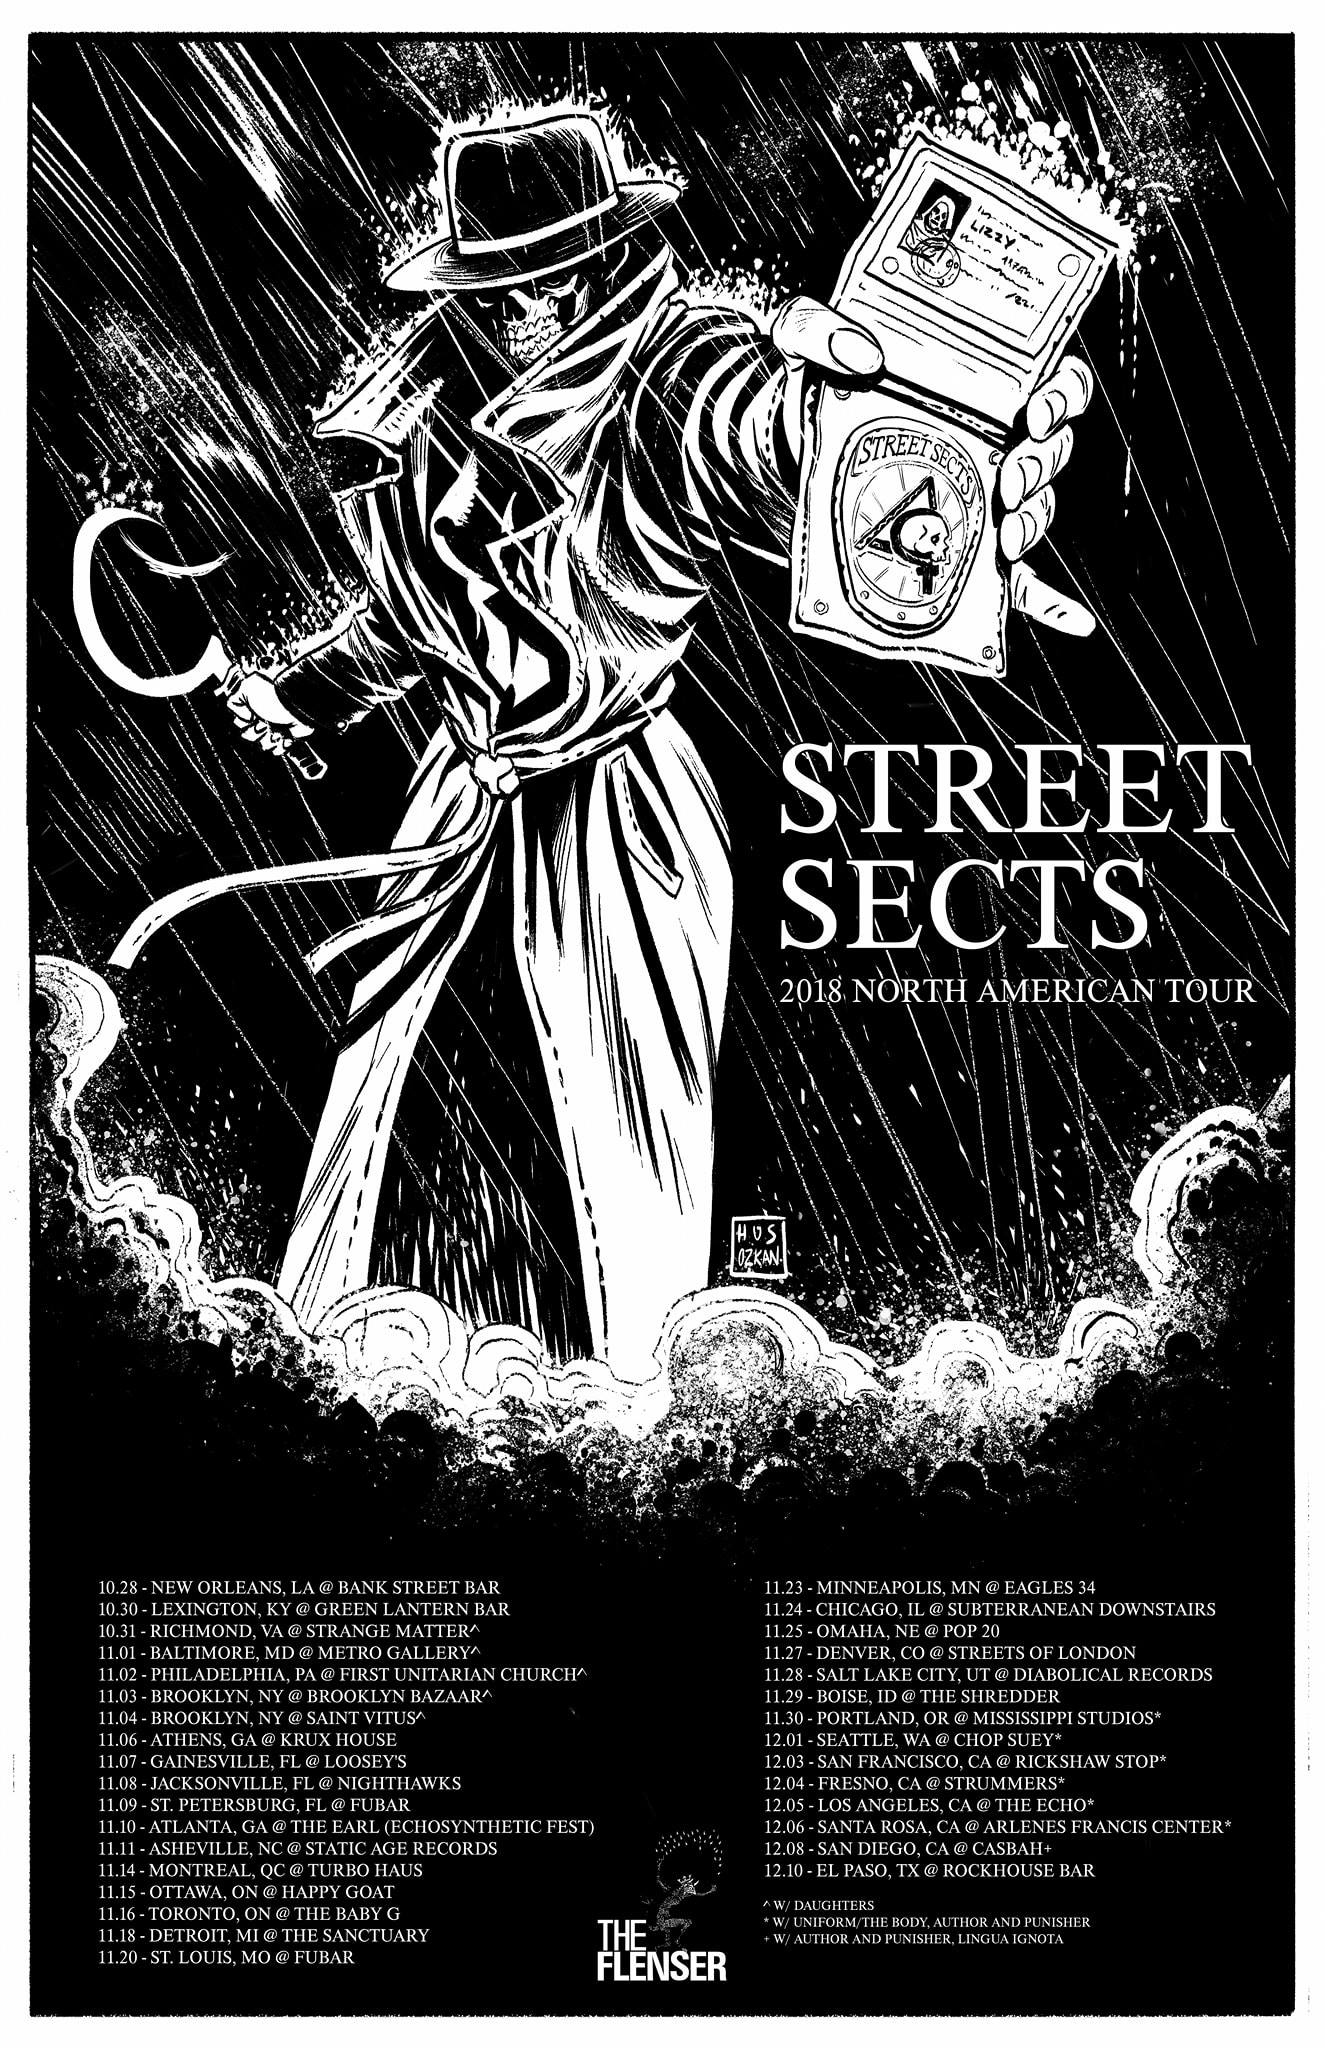 Street Sects Smash Face-First into the Road for an Intensive North American Tour